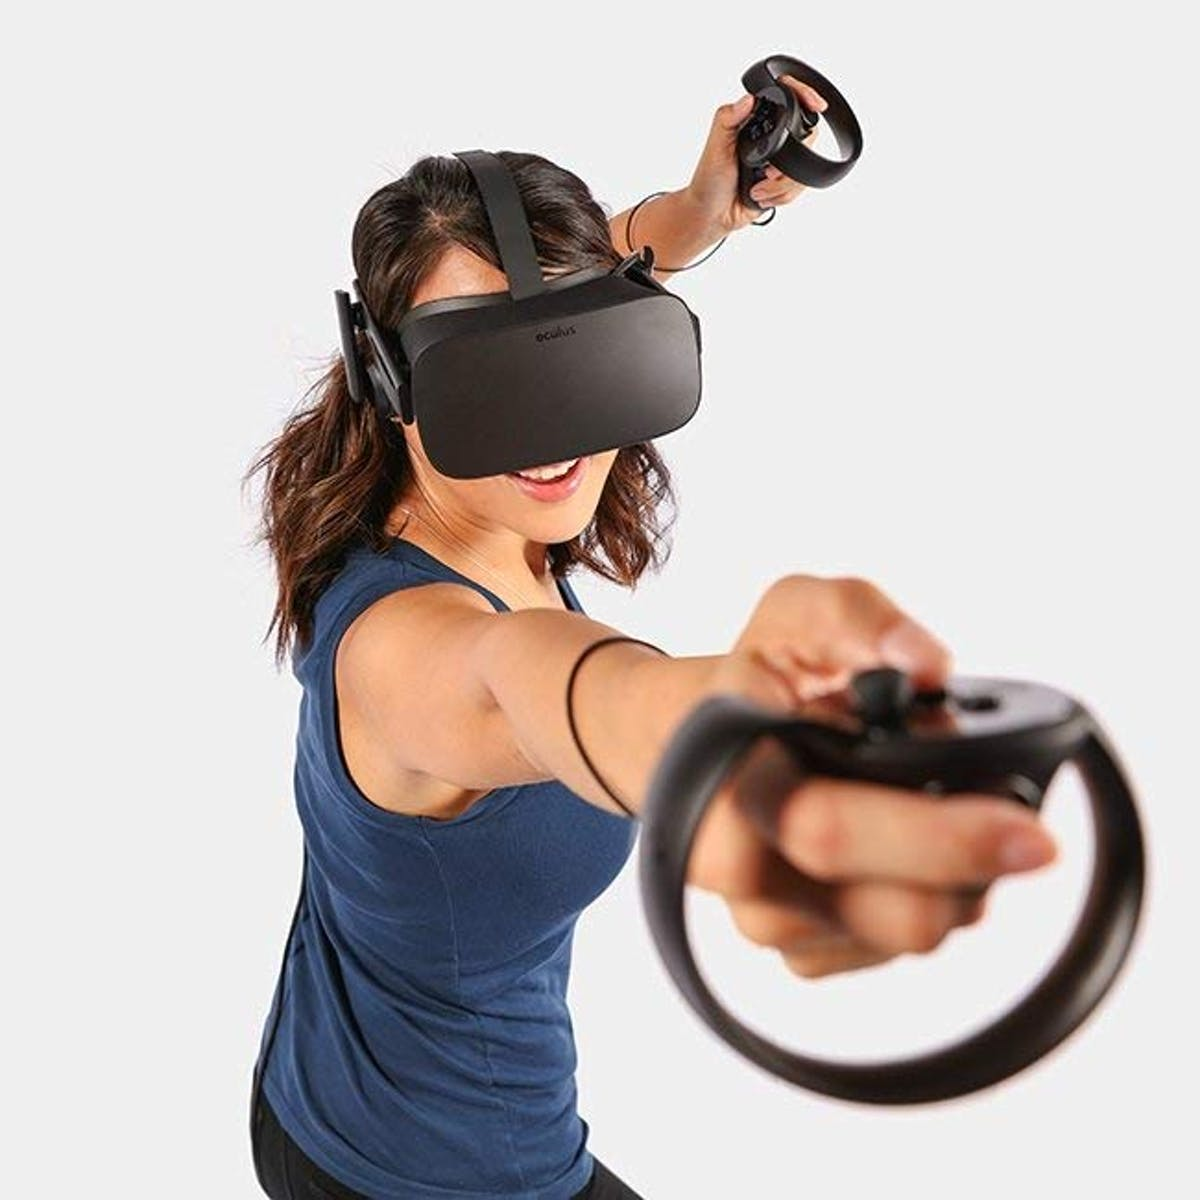 The Best Virtual Reality Headsets and Systems